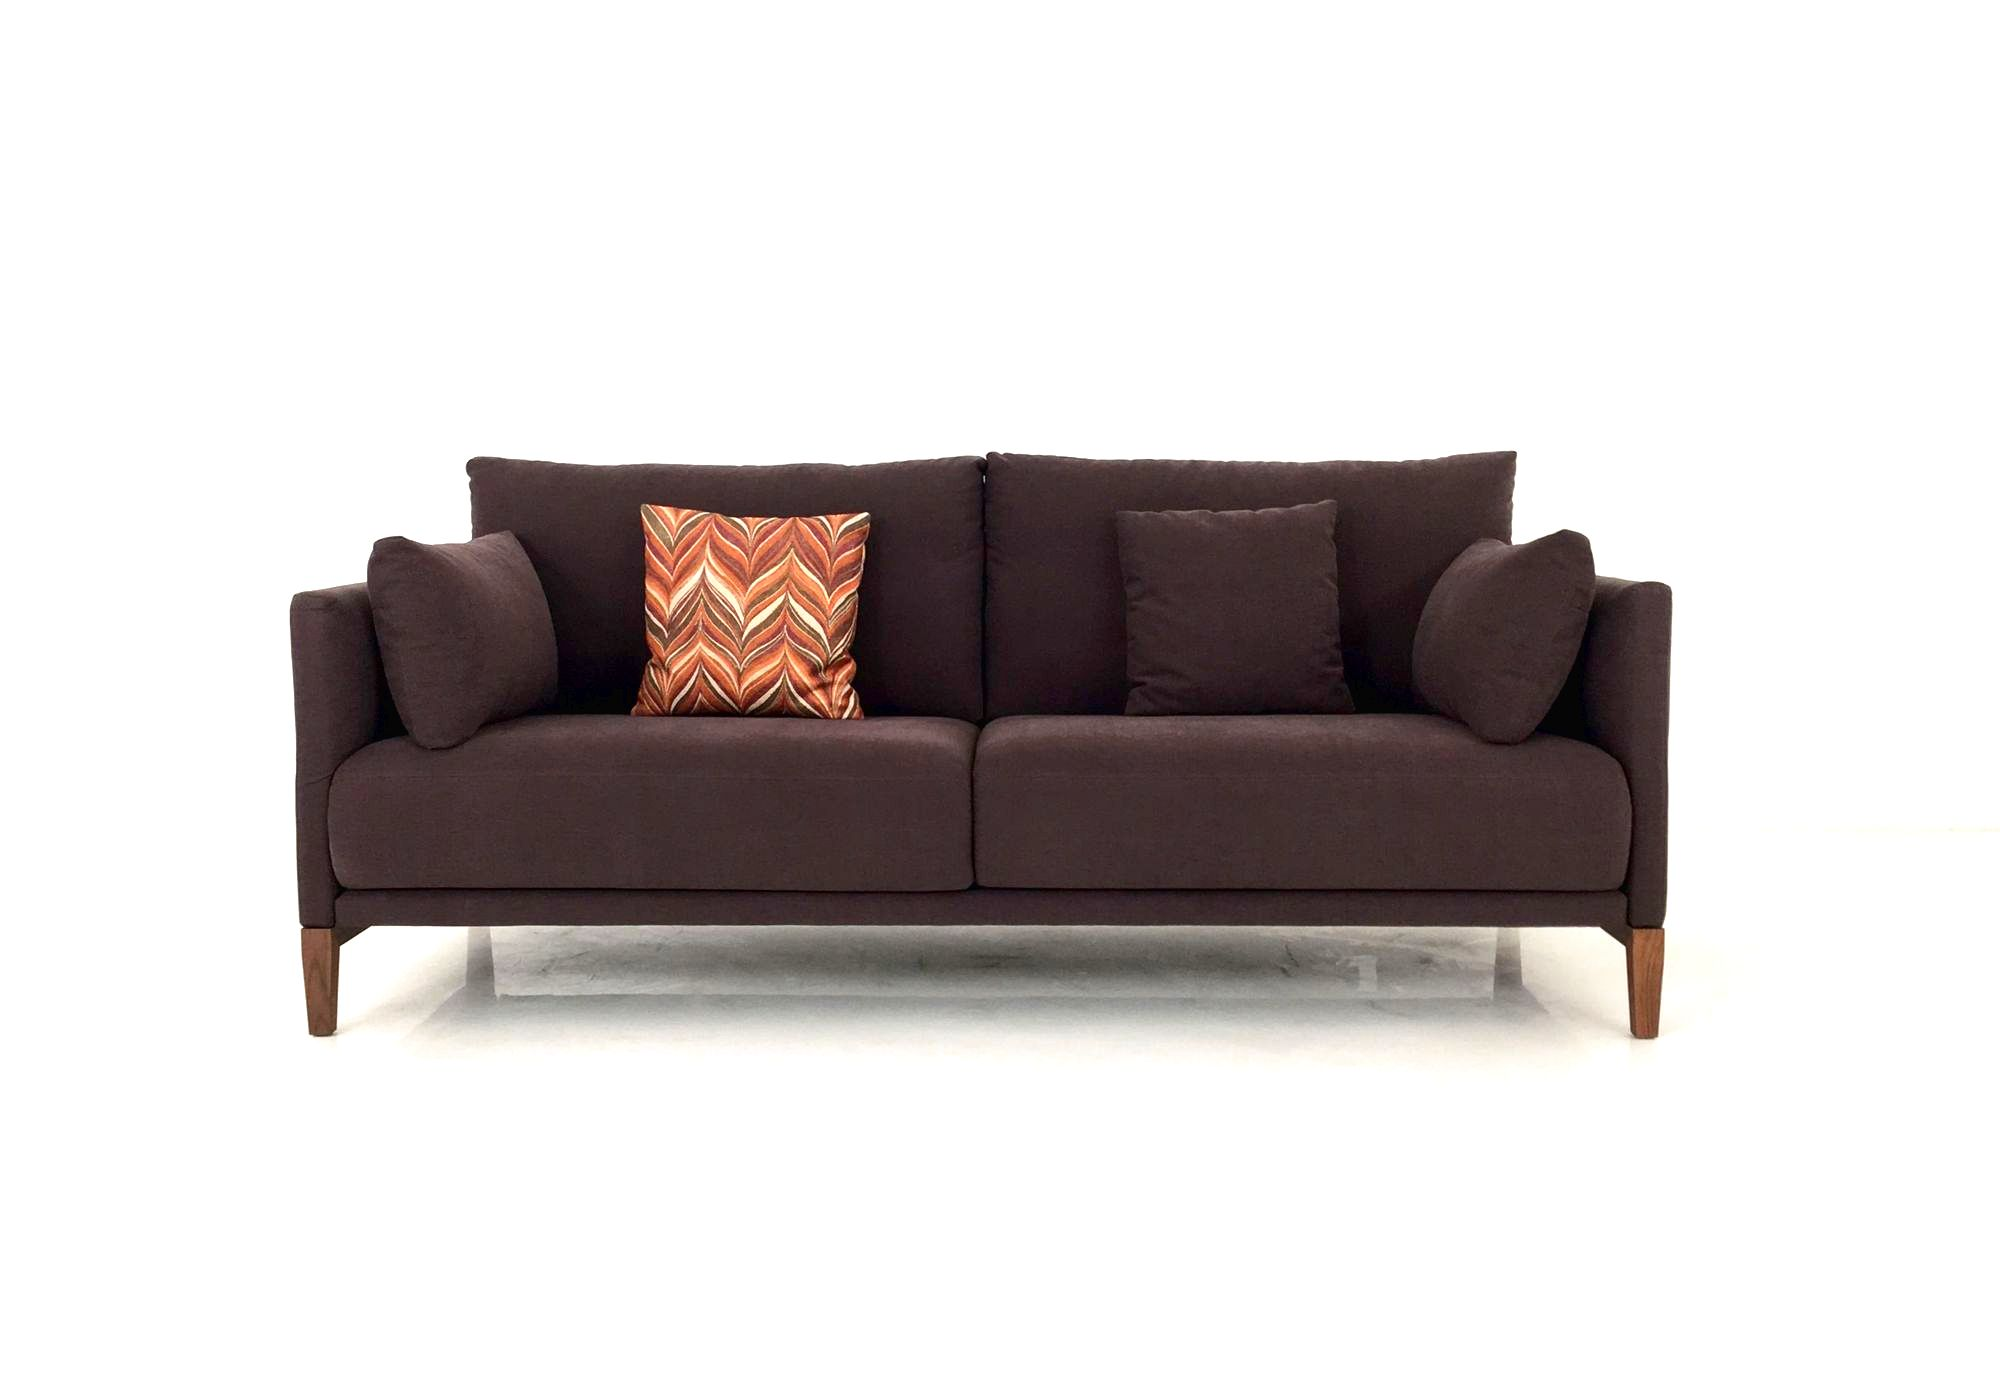 Couchtisch Primo Sofa Gross. Cheap Gross Weight Kgs With Sofa Gross. Finest